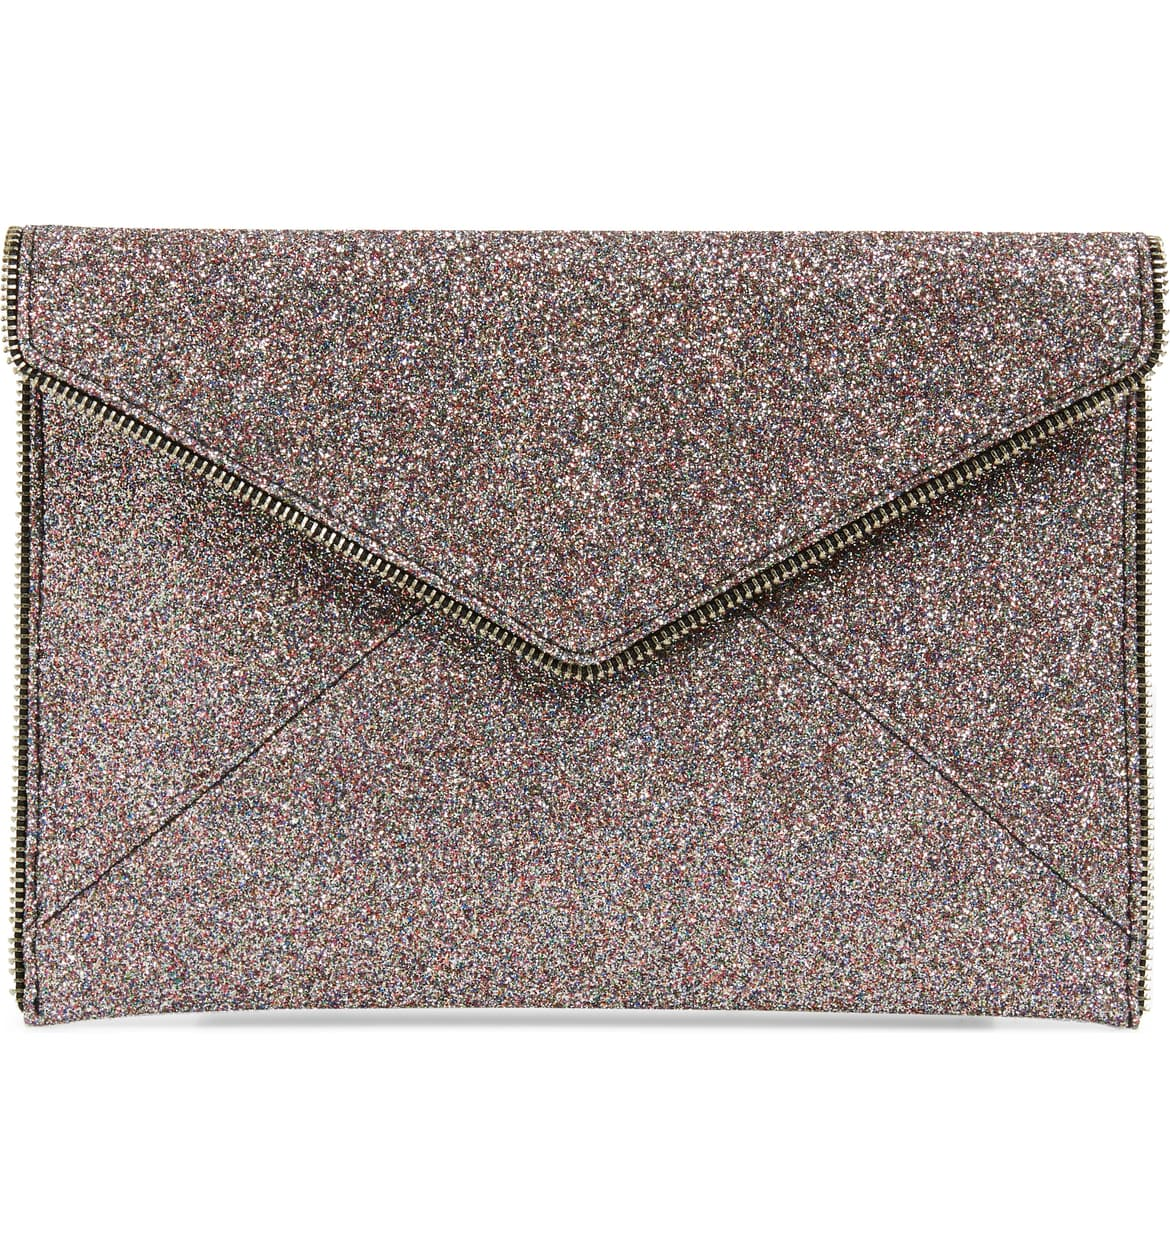 "<a  href=""https://shop.nordstrom.com/s/rebecca-minkoff-leo-glitter-clutch/5369263/full?origin=keywordsearch-personalizedsort&breadcrumb=Home%2FAll%20Results&color=silver"" target=""_blank"" title=""https://shop.nordstrom.com/s/rebecca-minkoff-leo-glitter-clutch/5369263/full?origin=keywordsearch-personalizedsort&breadcrumb=Home%2FAll%20Results&color=silver"">Rebecca Minkoff Leo Glitter Clutch - $128.</a>{&nbsp;}From cozy to gold hued to tailored, Nordstrom has the hottest trends for getting glam this holiday season! (Credit: Nordstrom)"